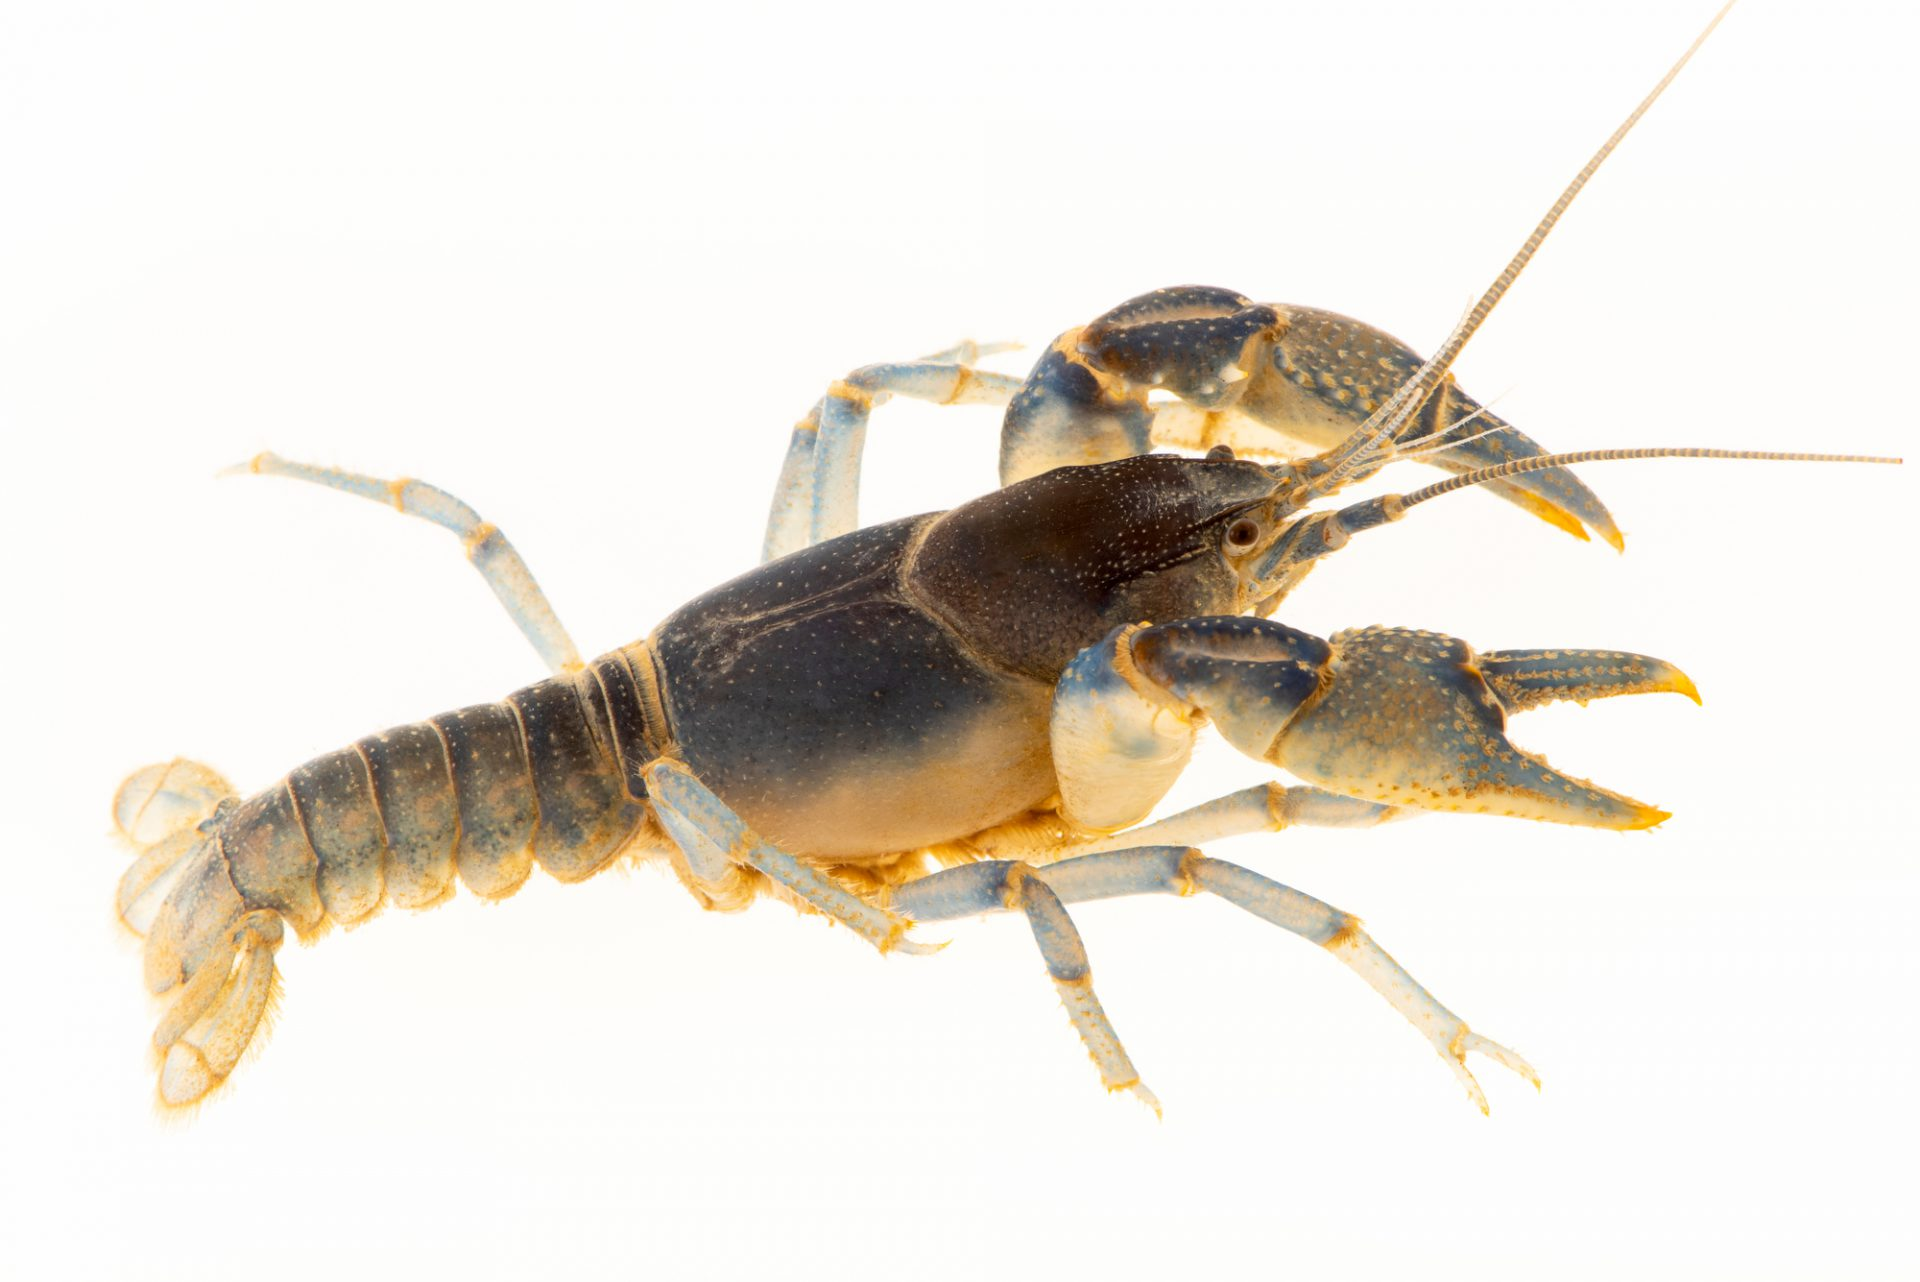 Photo: Teays Valley mudbug (Cambarus dubius) from the wild.